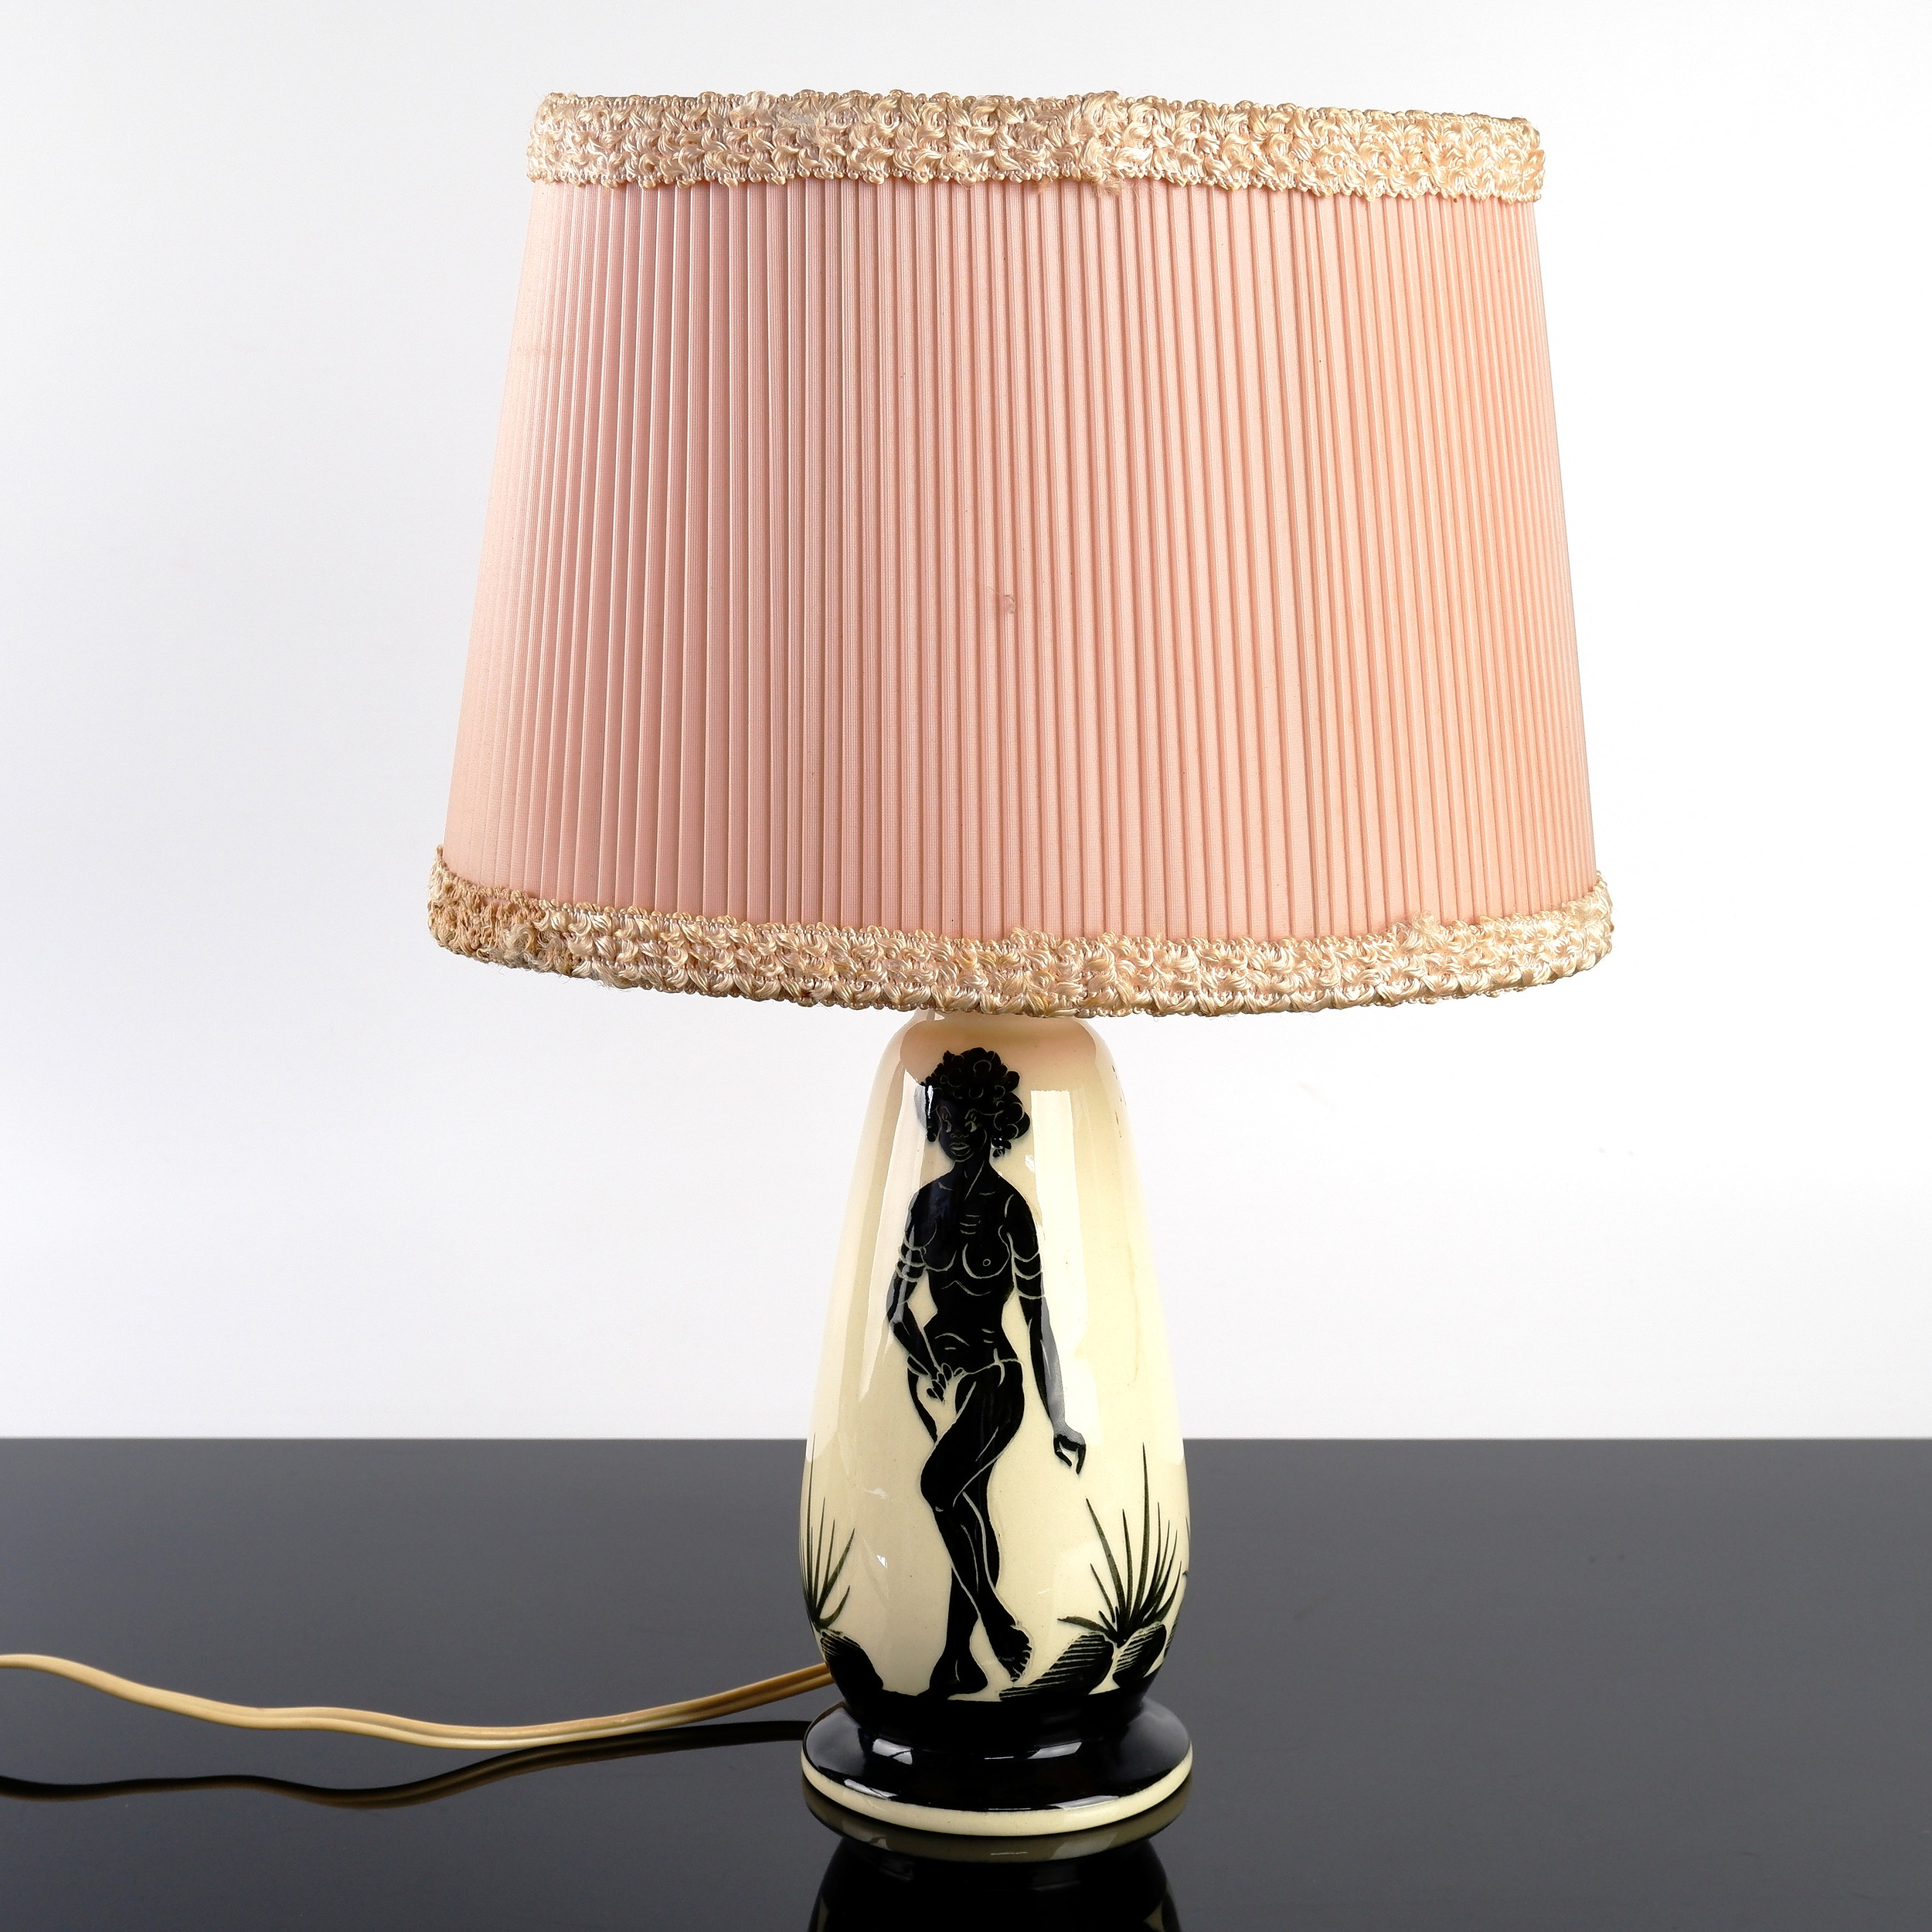 'Vintage Australian Jedda Pottery Table Lamp with Black Lady Motif and Shade'